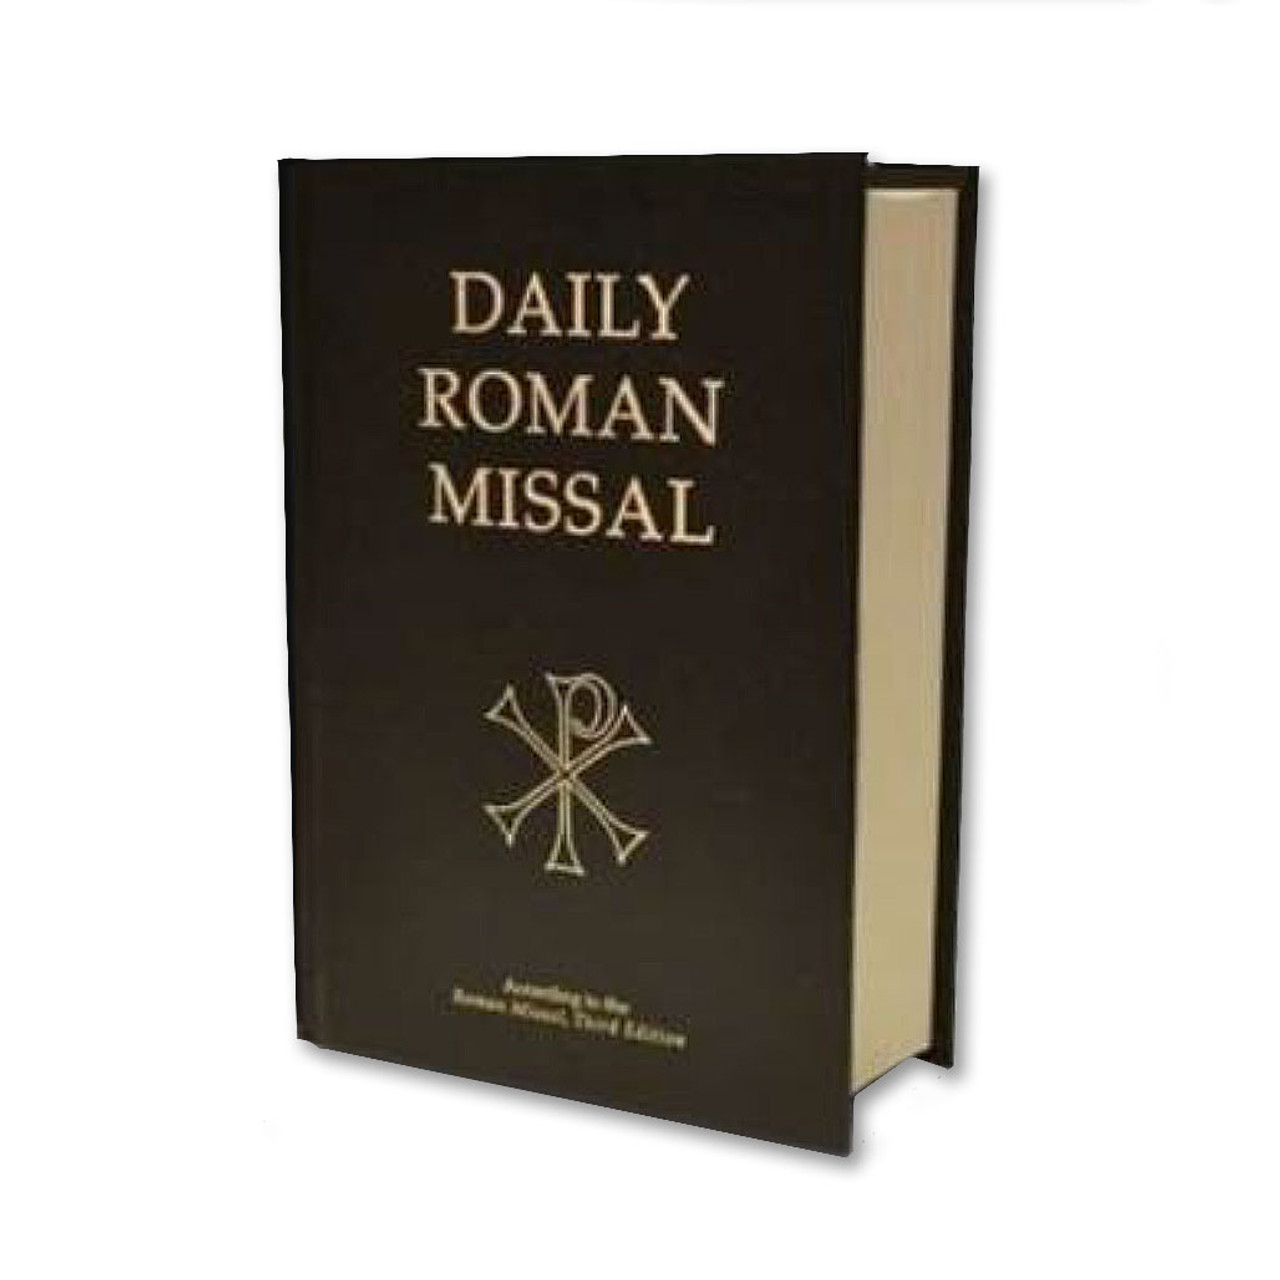 Rev. 7th Edition Daily Roman Missal with Black Hardcover